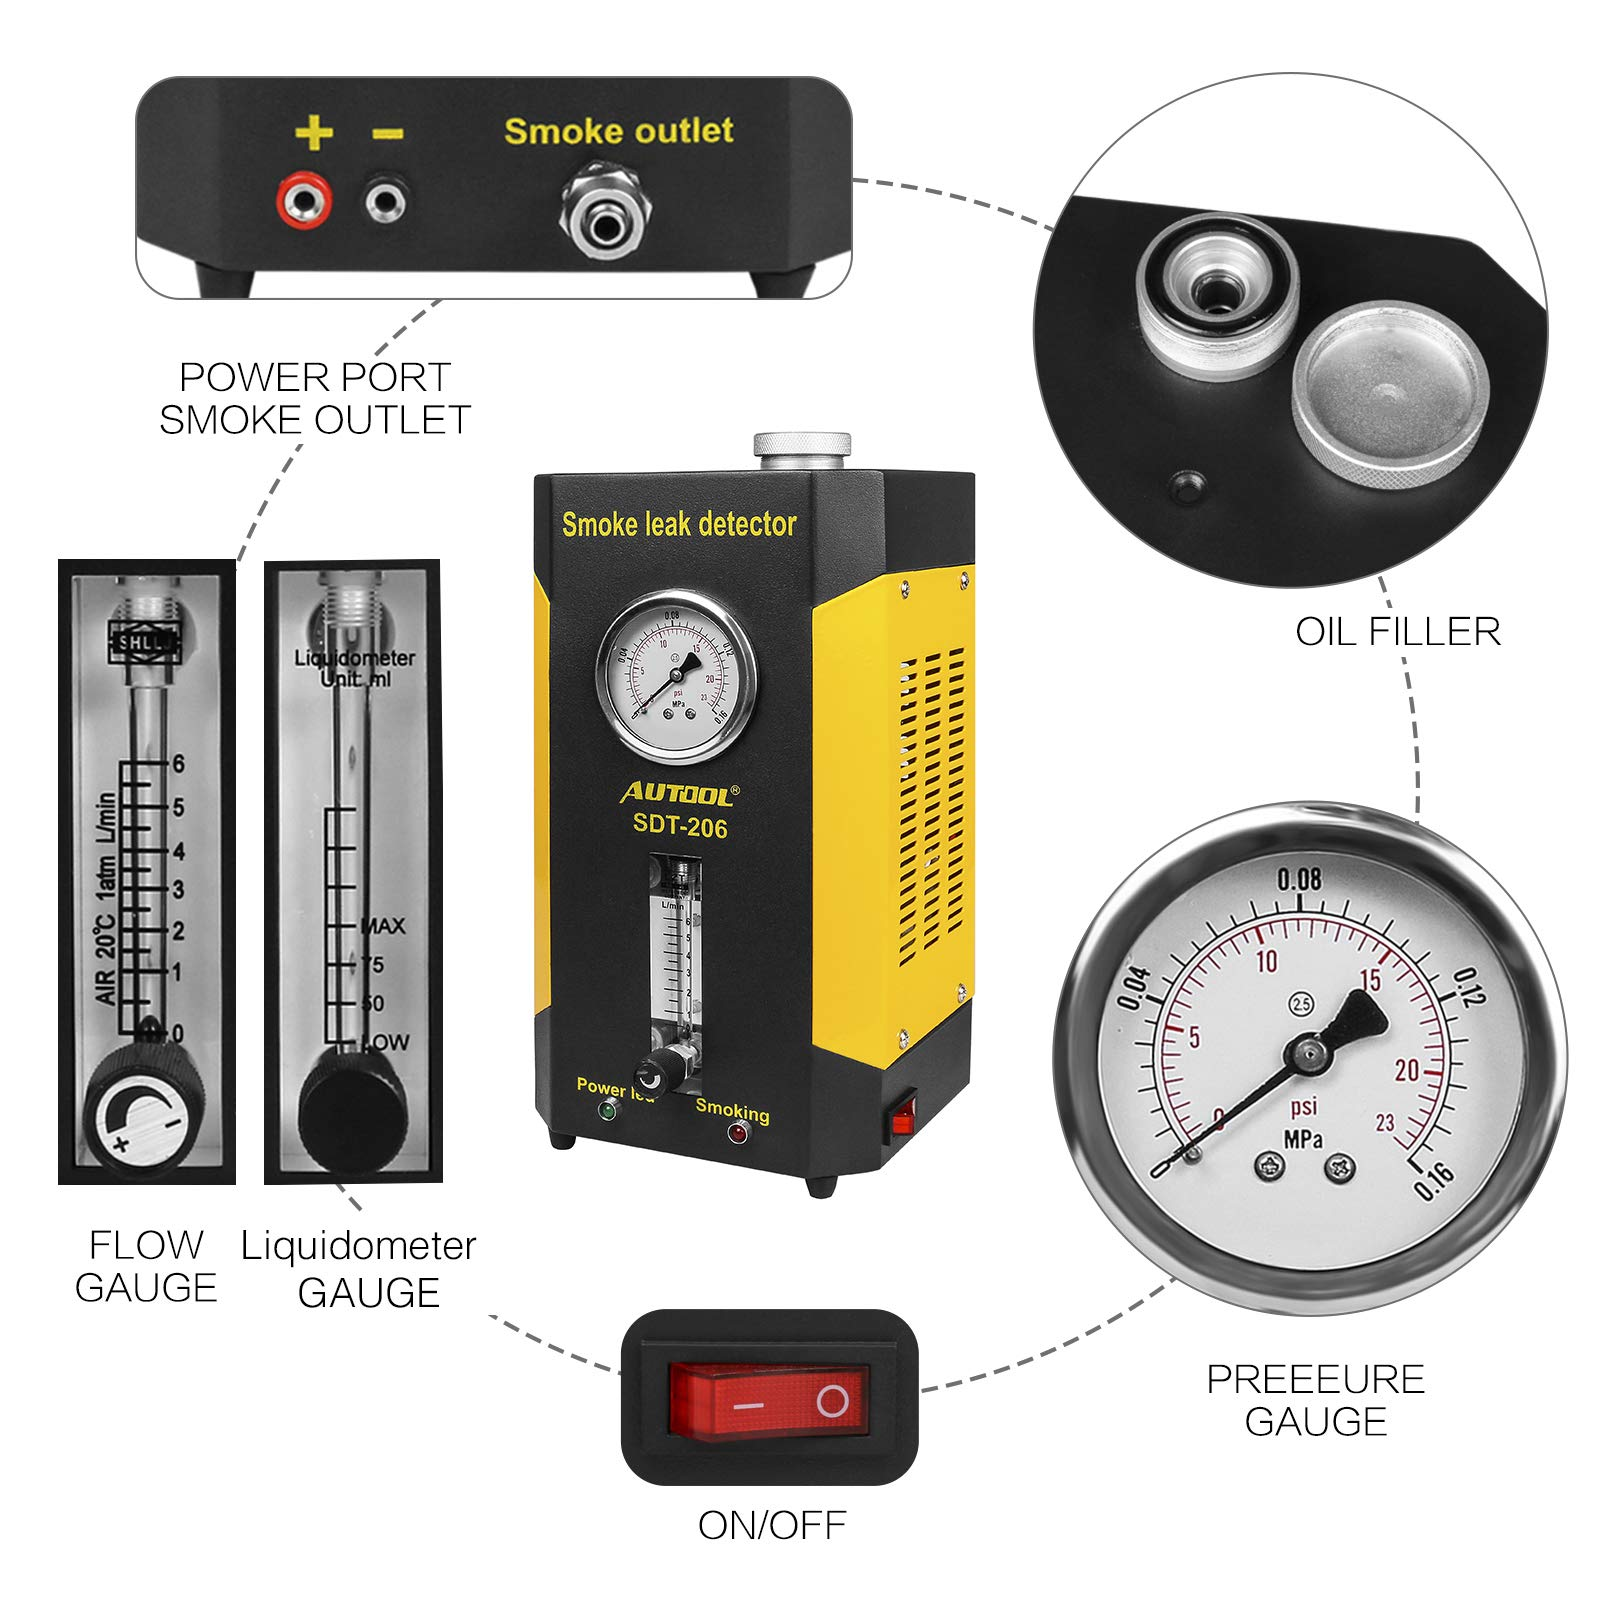 AUTOOL SDT206 Automotive Fuel leakage Diagnostic Tester 2 MODES Car Conduit PIPE System Leakage Tester Car Fuel Leak Detector For 12V Vehicle Boat With Adjustable FlowMeter EVAP Leak Testers Detectors by AUTOOL (Image #3)